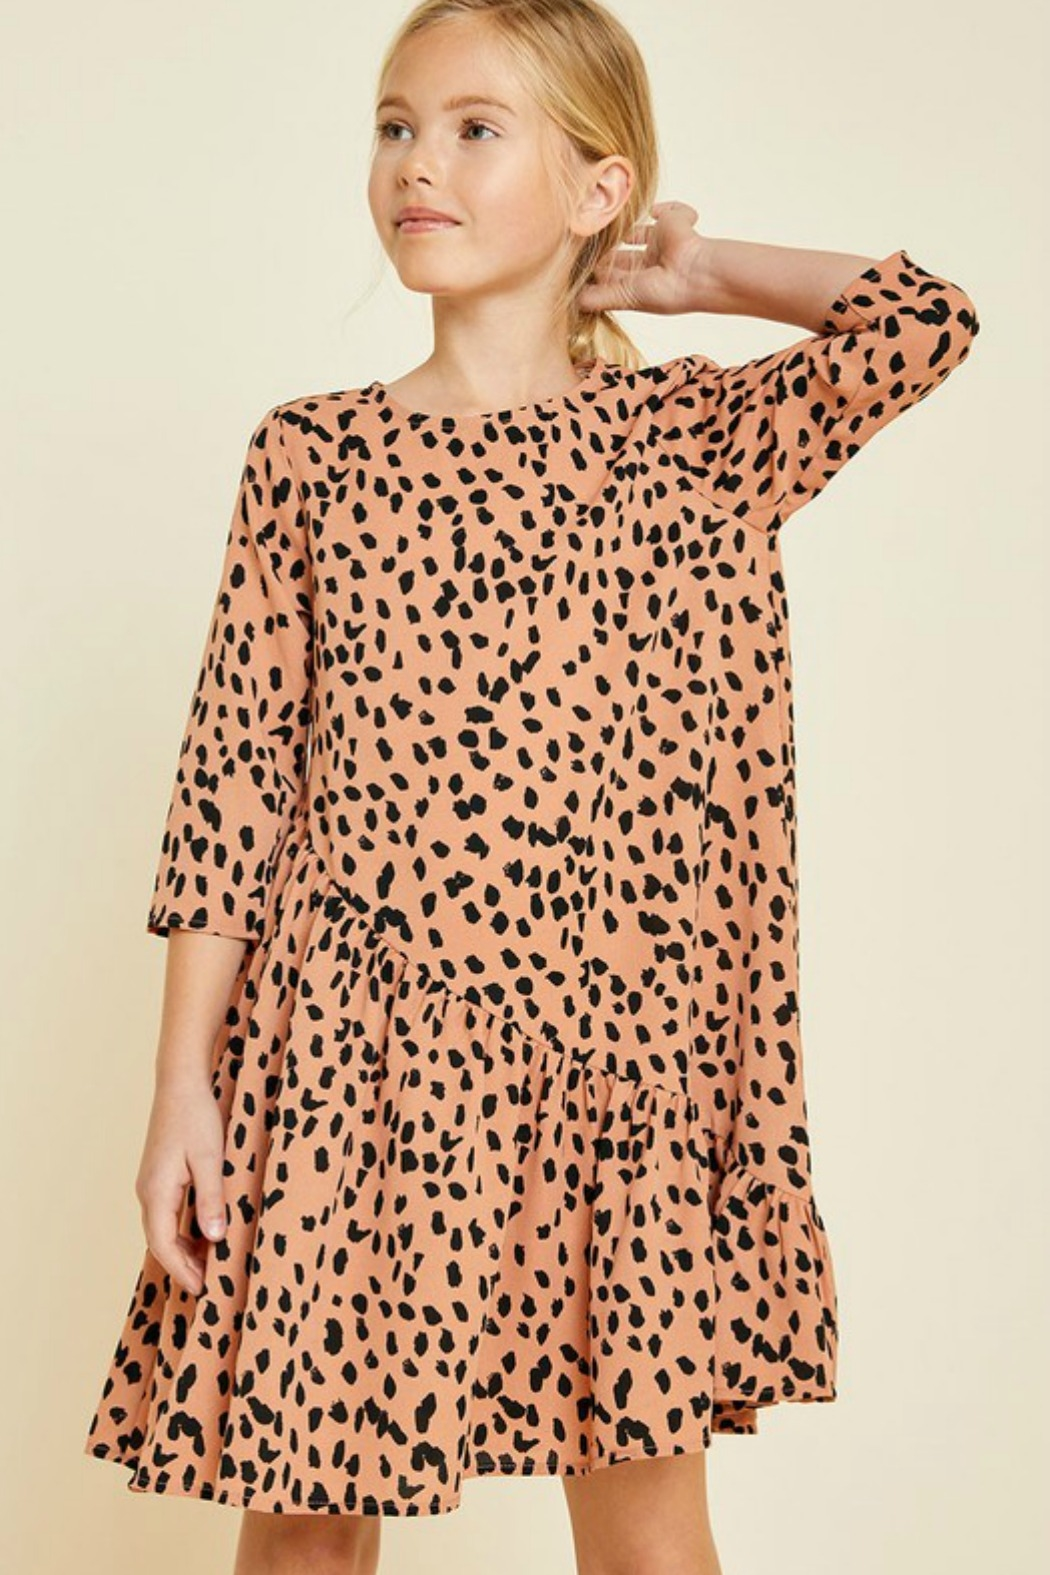 R+D emporium  Cheetah Blush Dress - Main Image